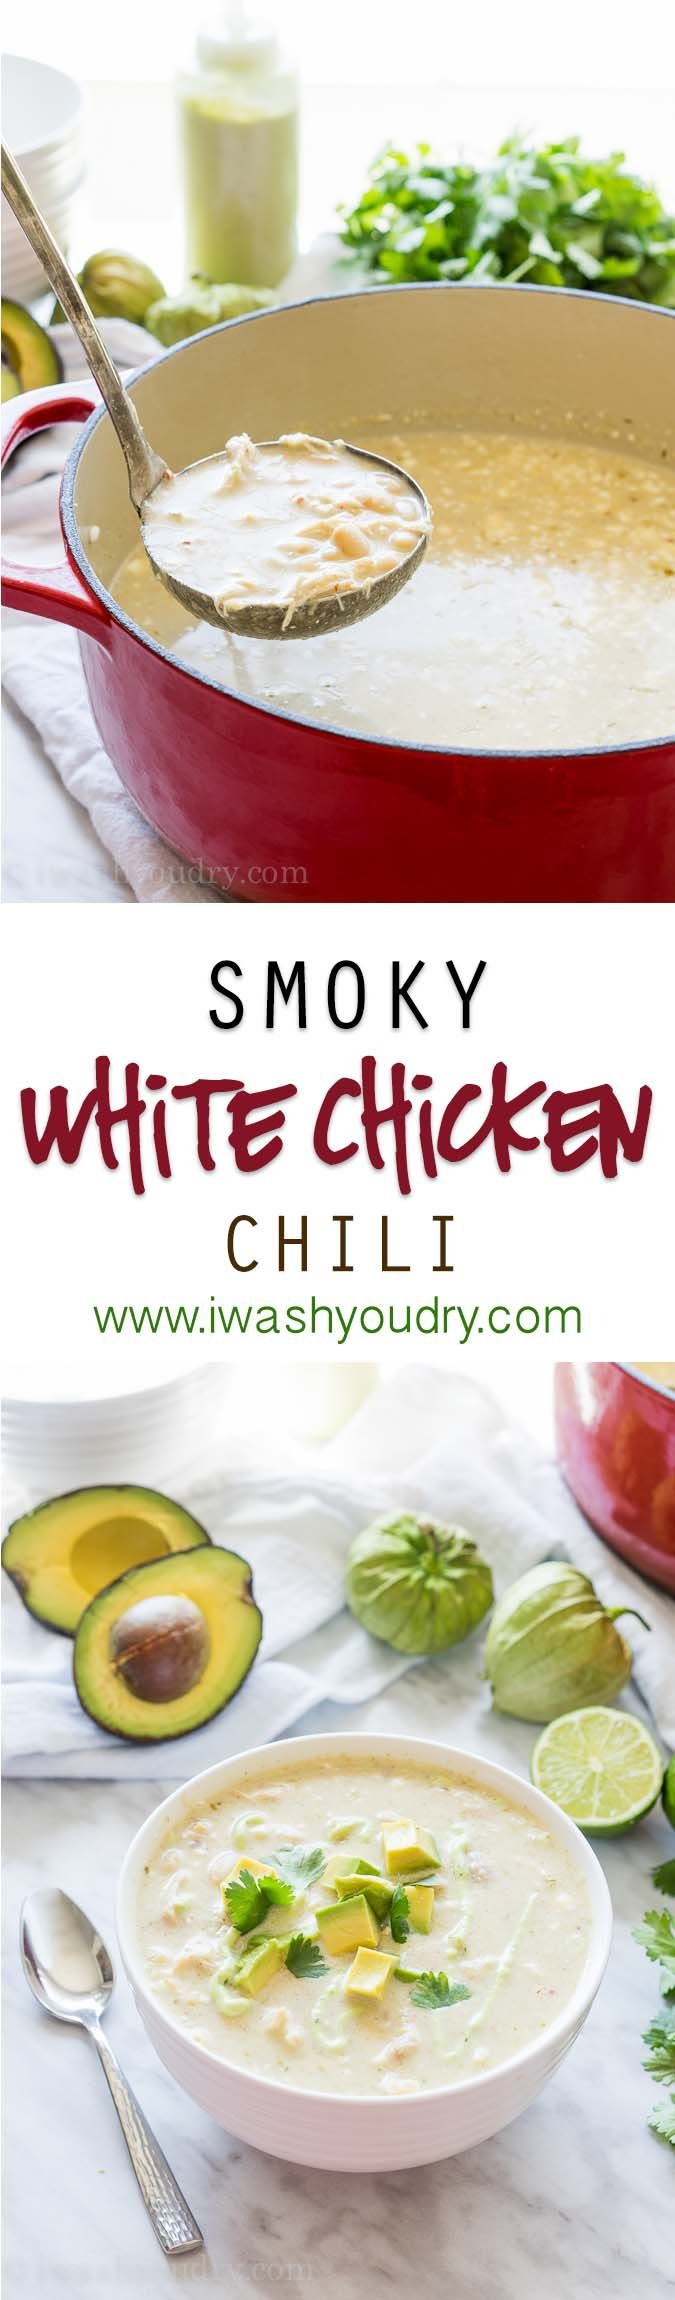 Check out Smoky White Chicken Chili. It's so easy to make ...